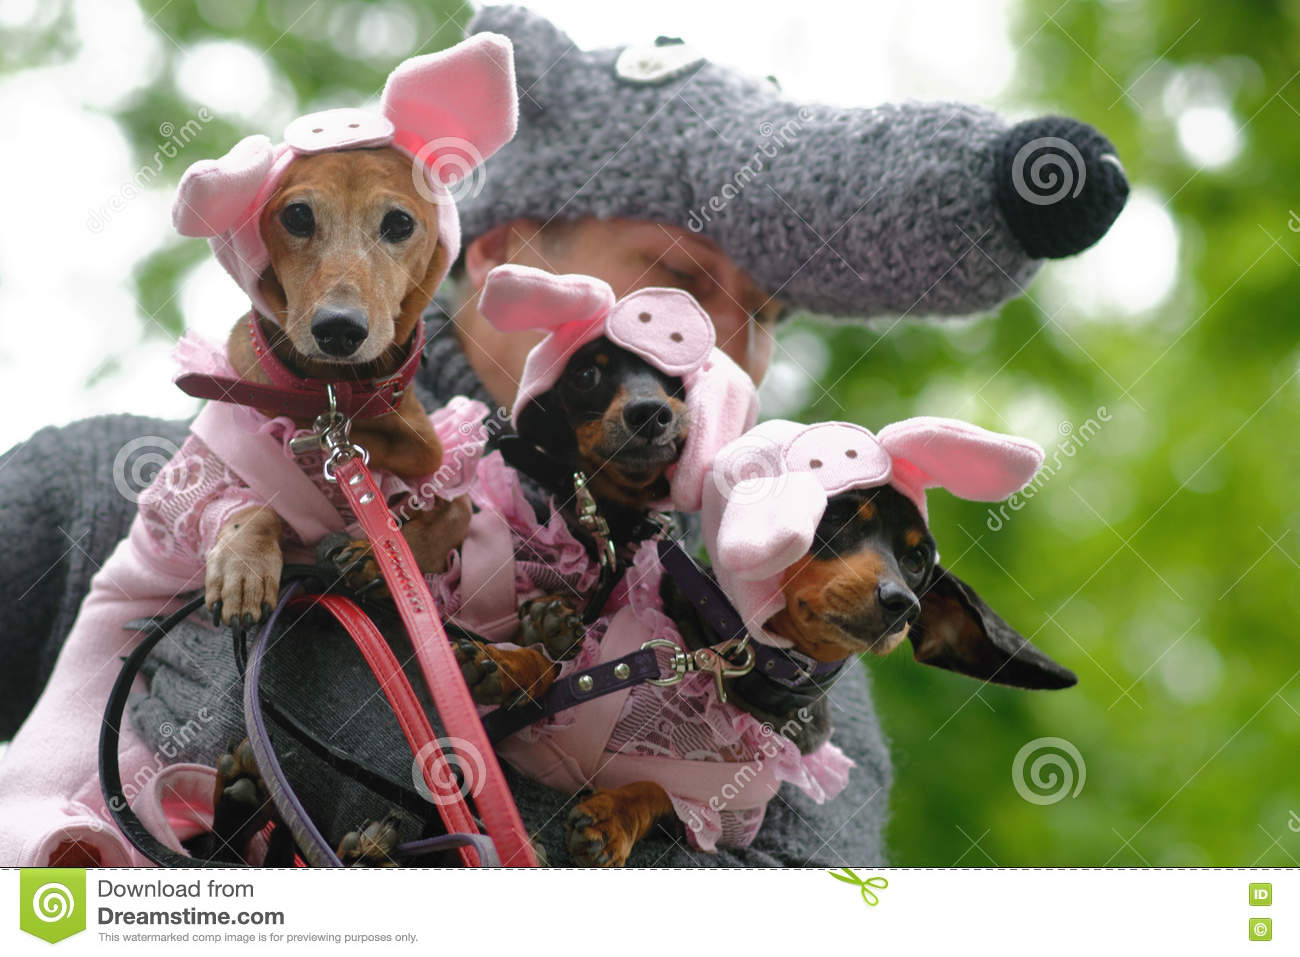 Dogs in costumes during Dachshund parade Royalty Free Stock Photos & Dogs In Costume During Dachshund Parade Editorial Photography ...